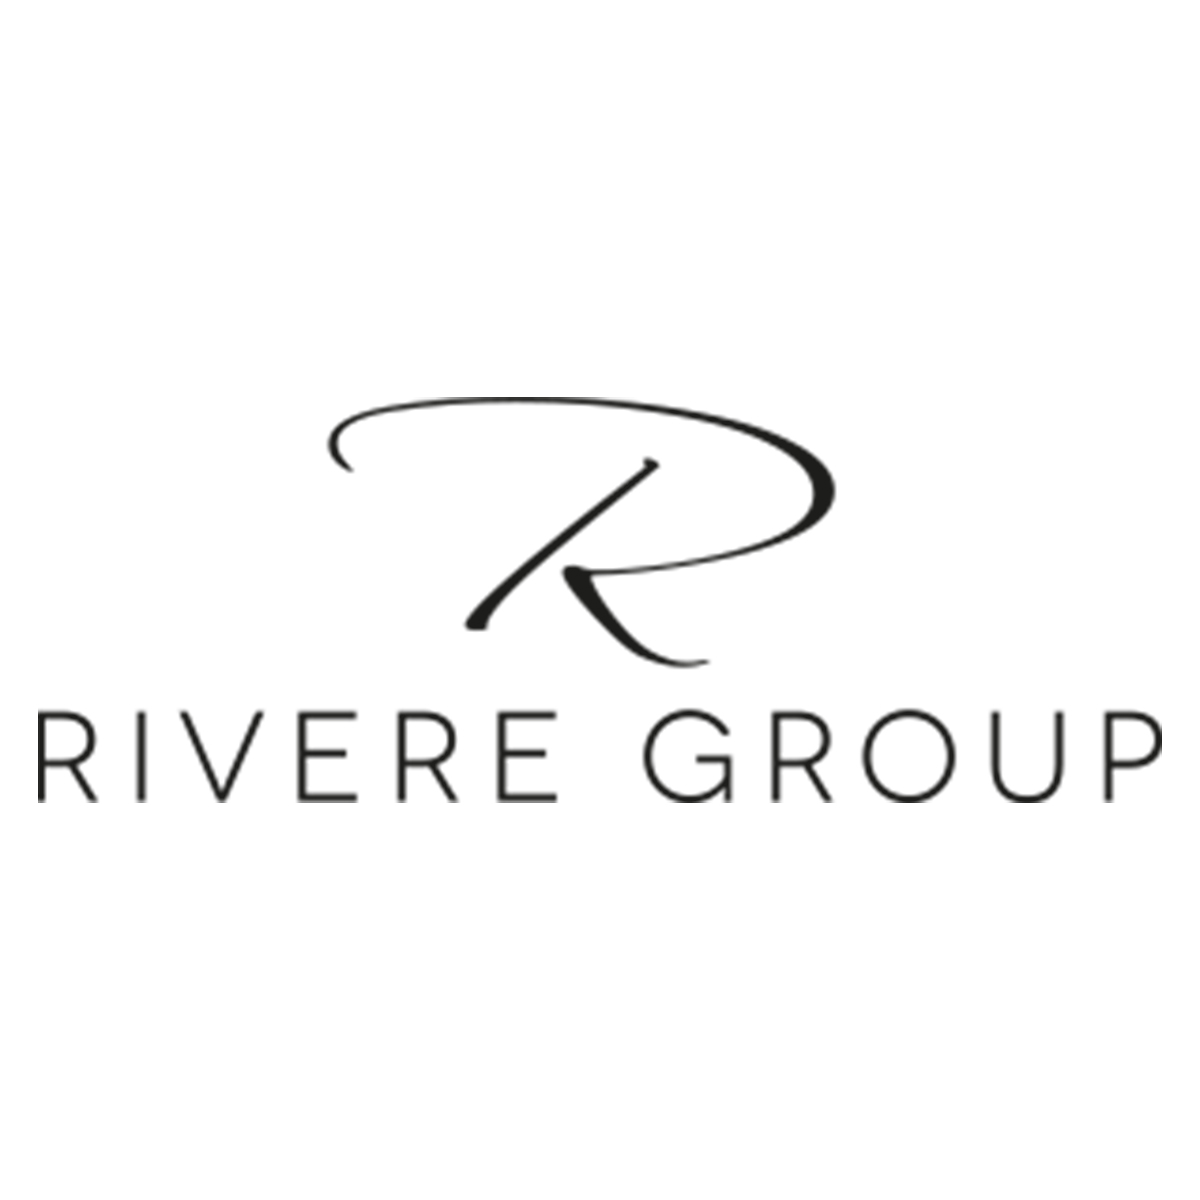 Rivere group